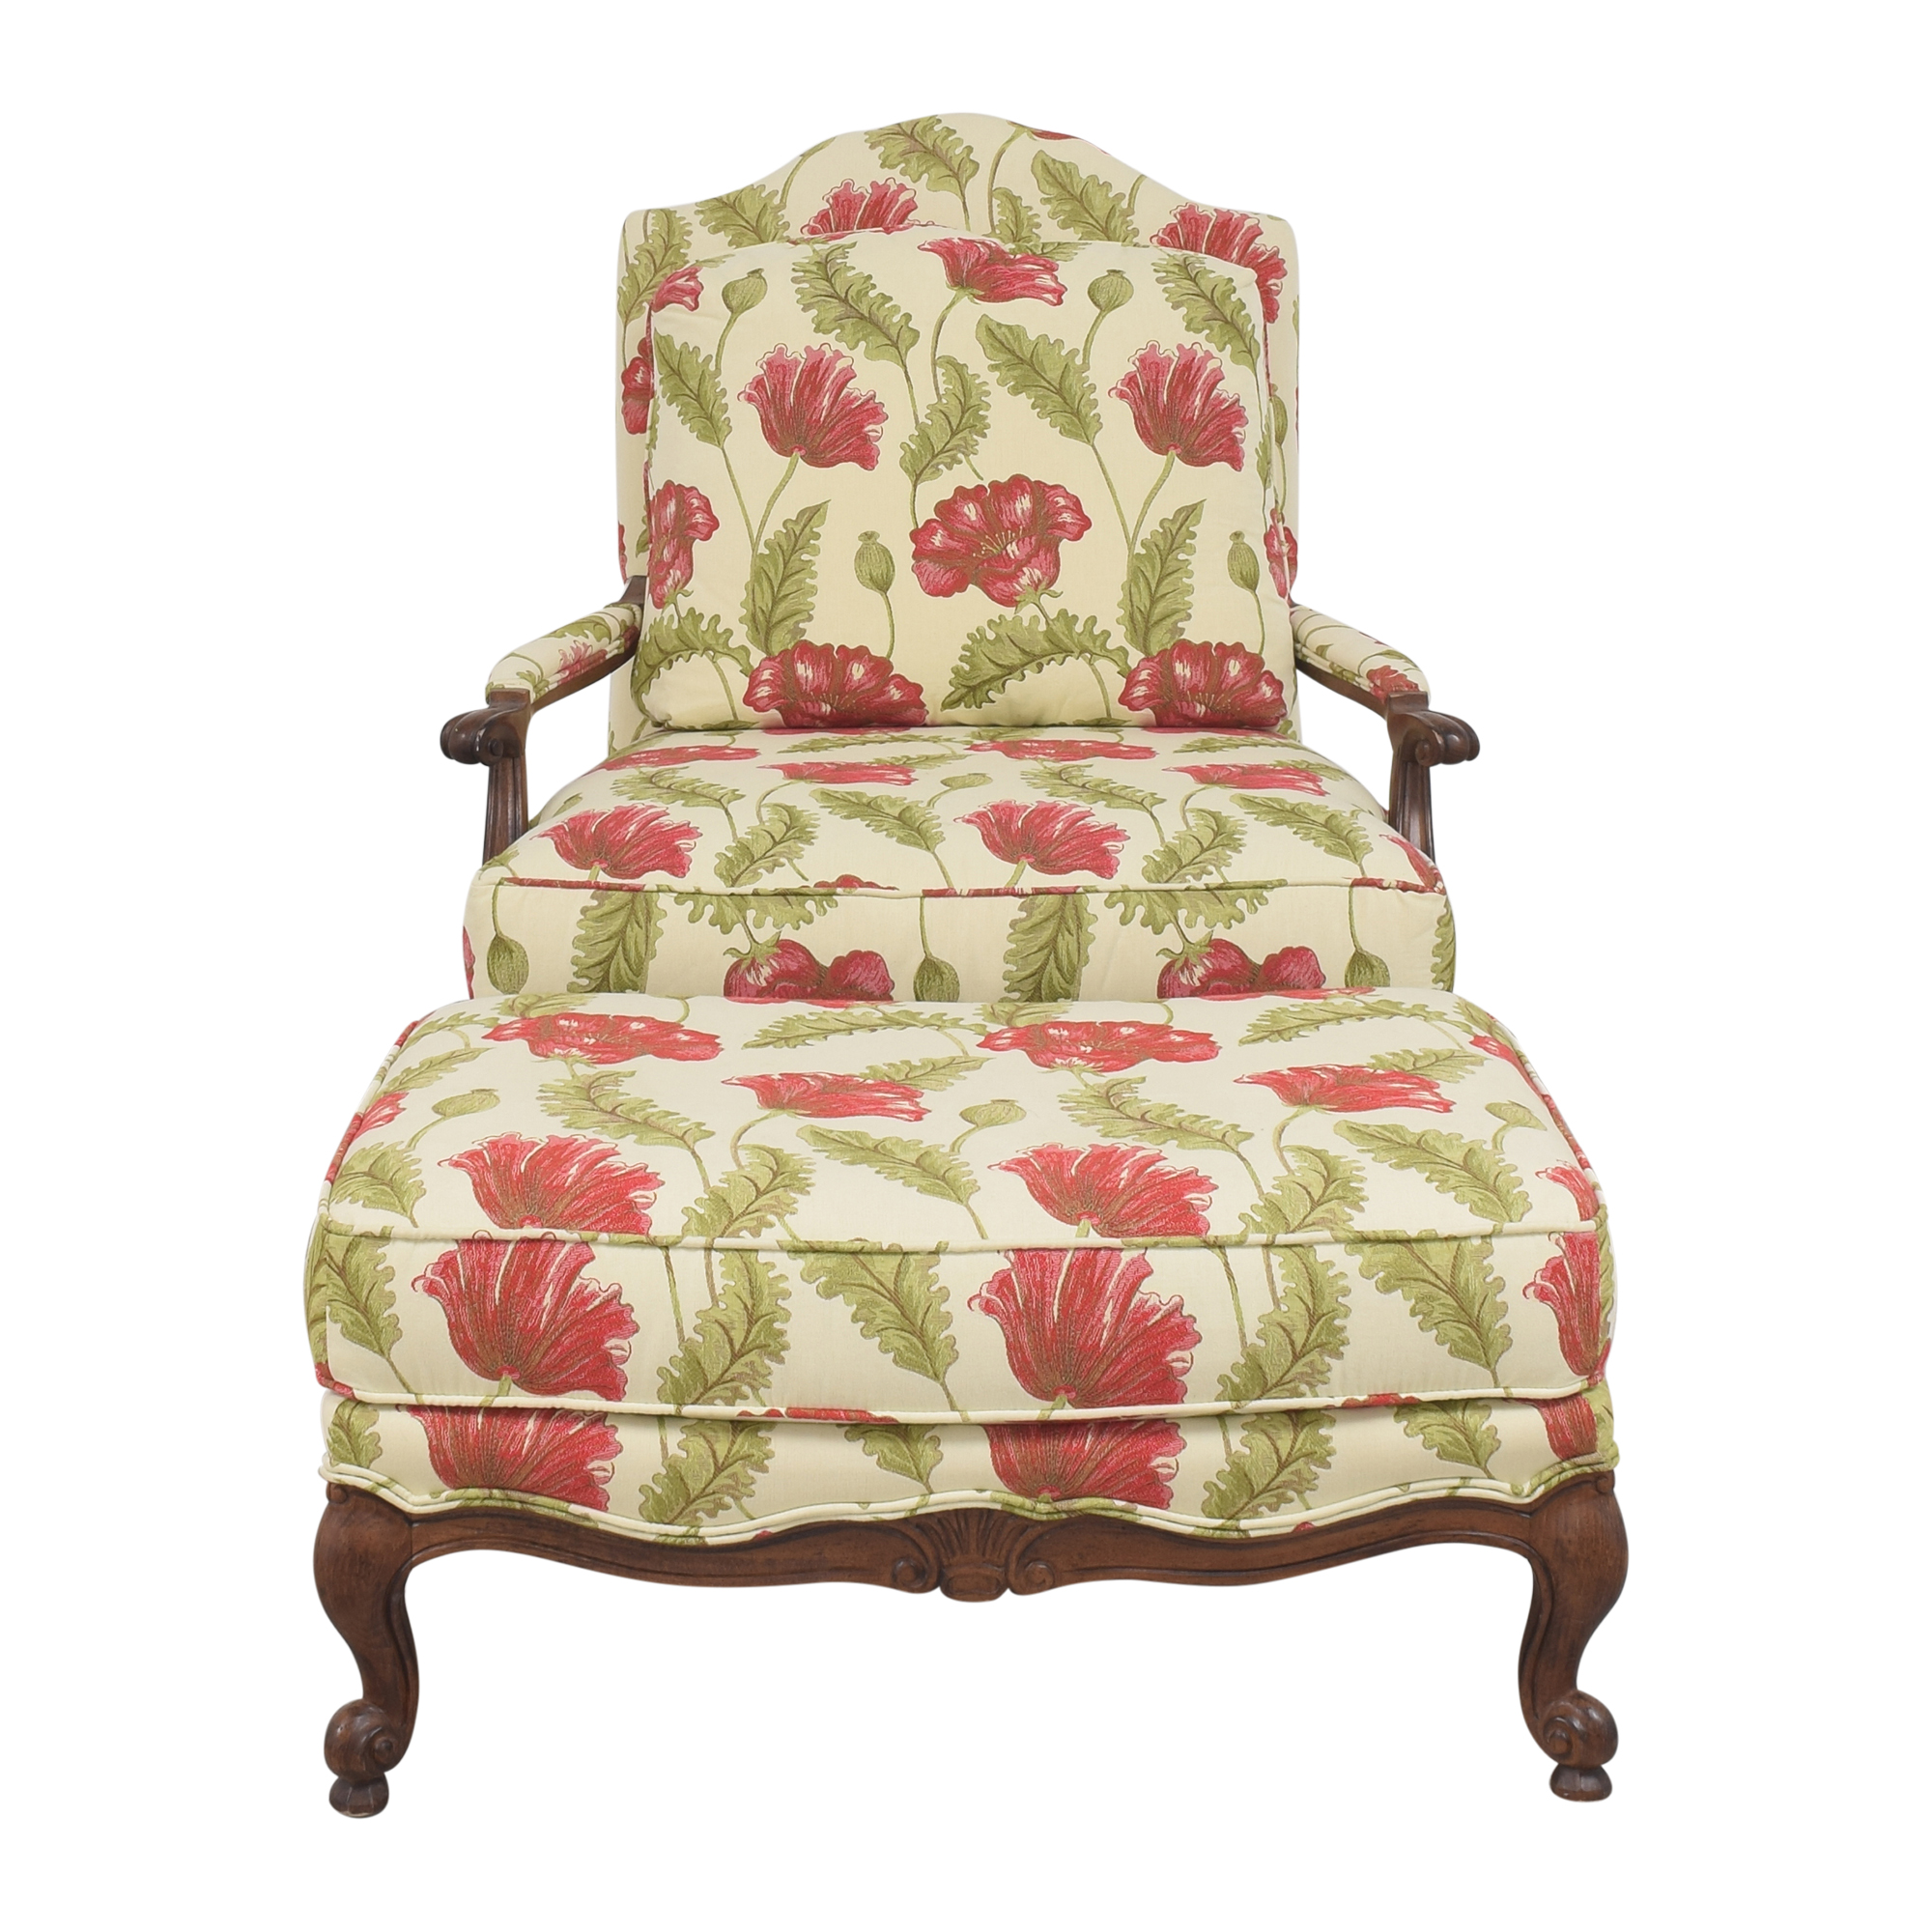 Clayton Marcus Clayton Marcus Floral Chair with Ottoman multi